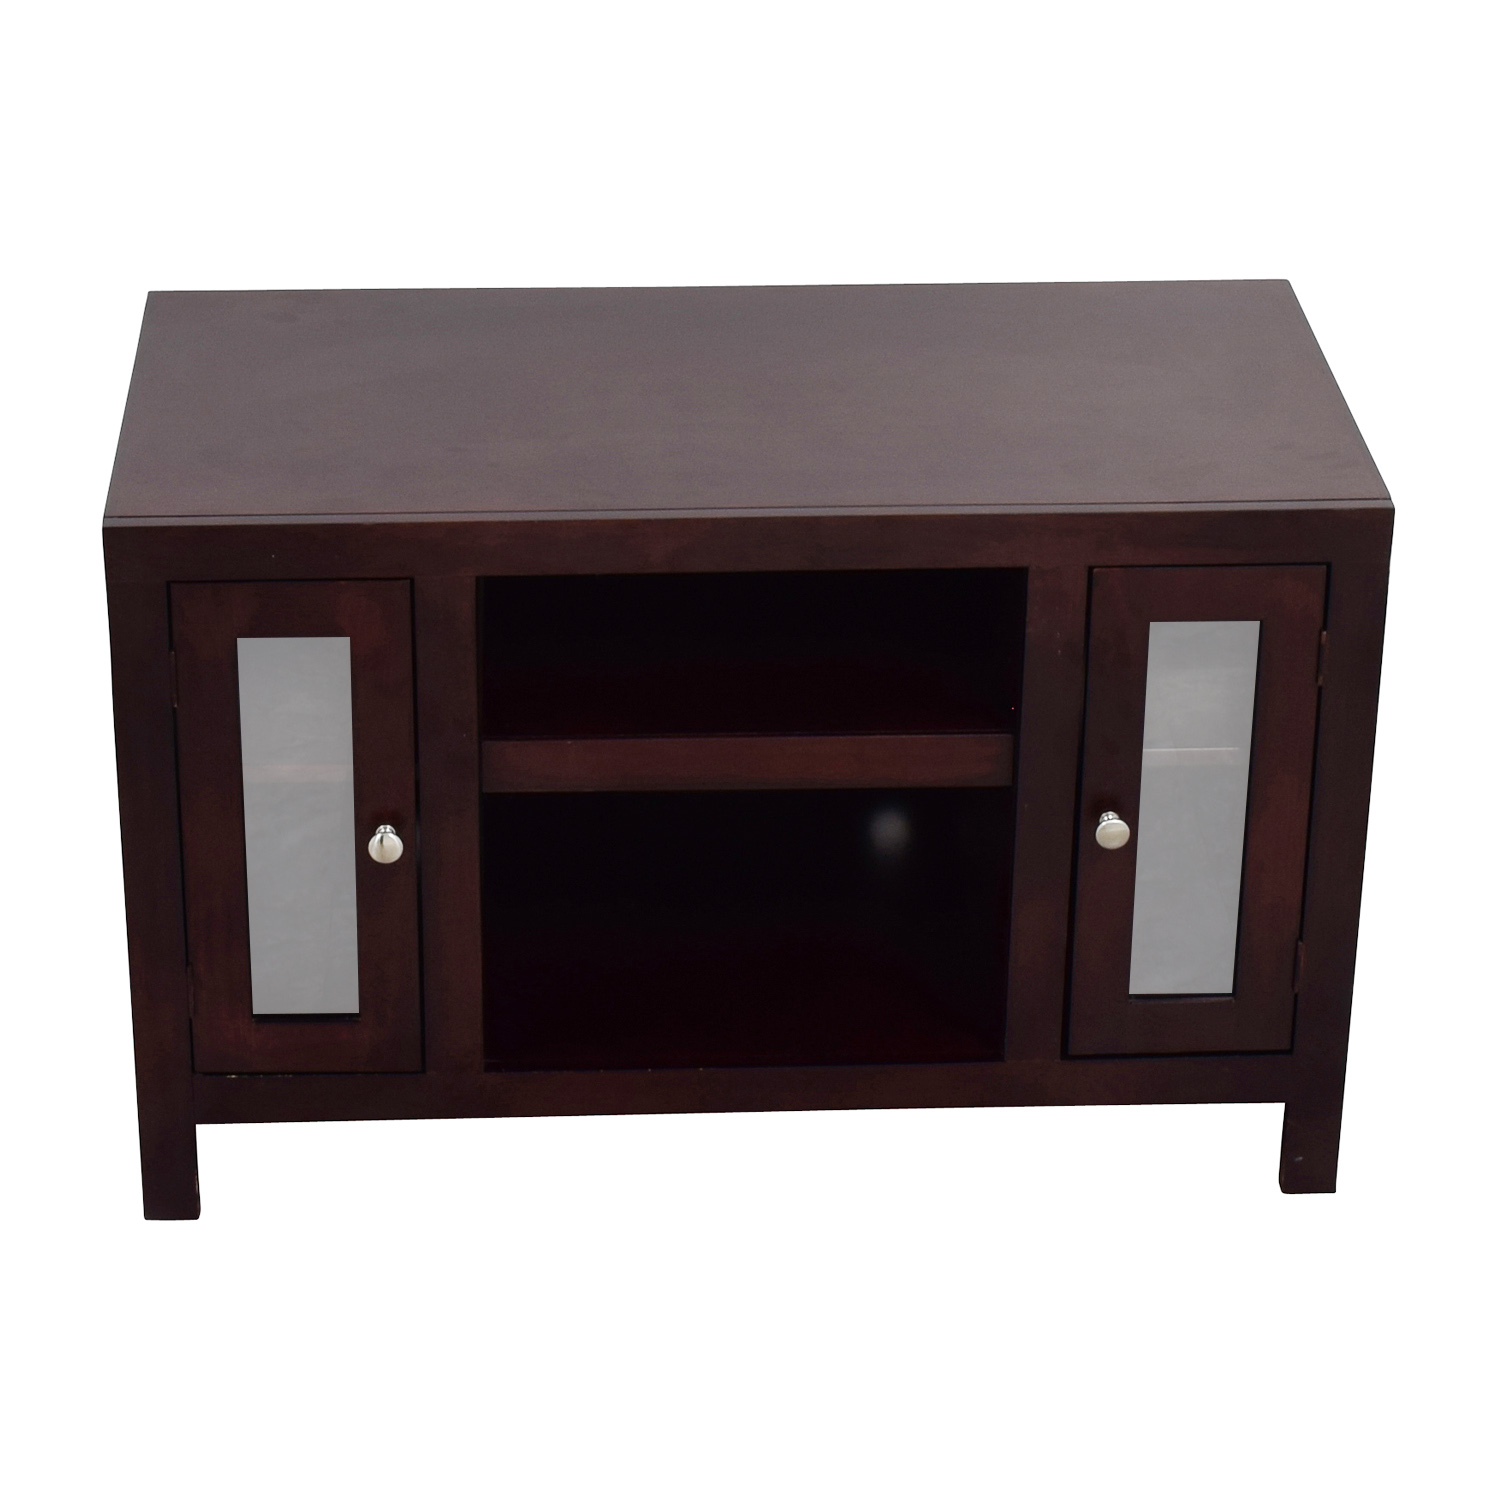 Golden Oak Golden Oak Del Mar Cherry Wood TV Console nj